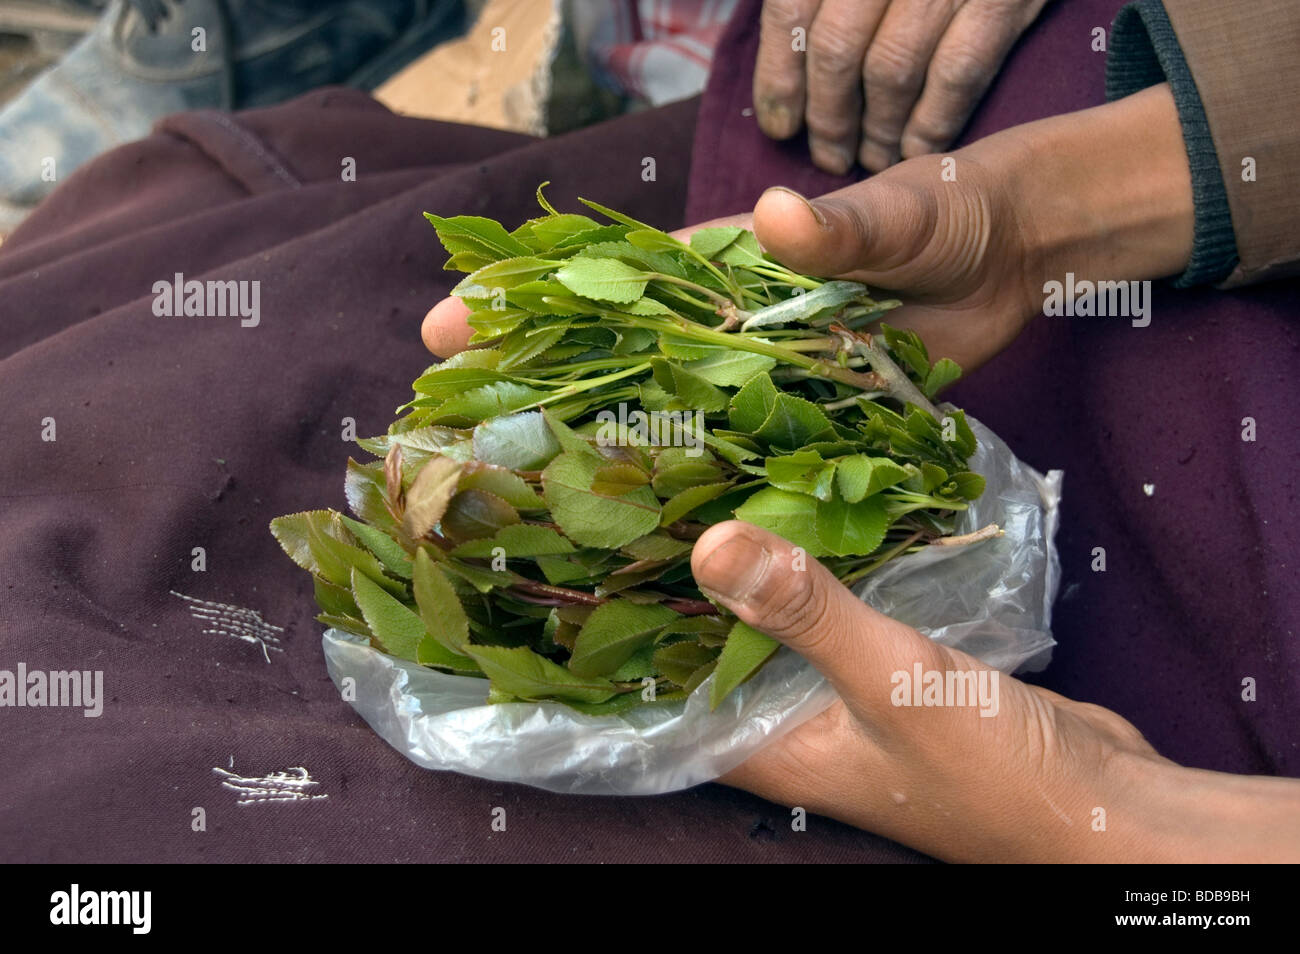 A Yemeni boy holds a small bag of khat leaves - a legal drug and stimulant - in the khat market in Sana'a, Yemen. - Stock Image